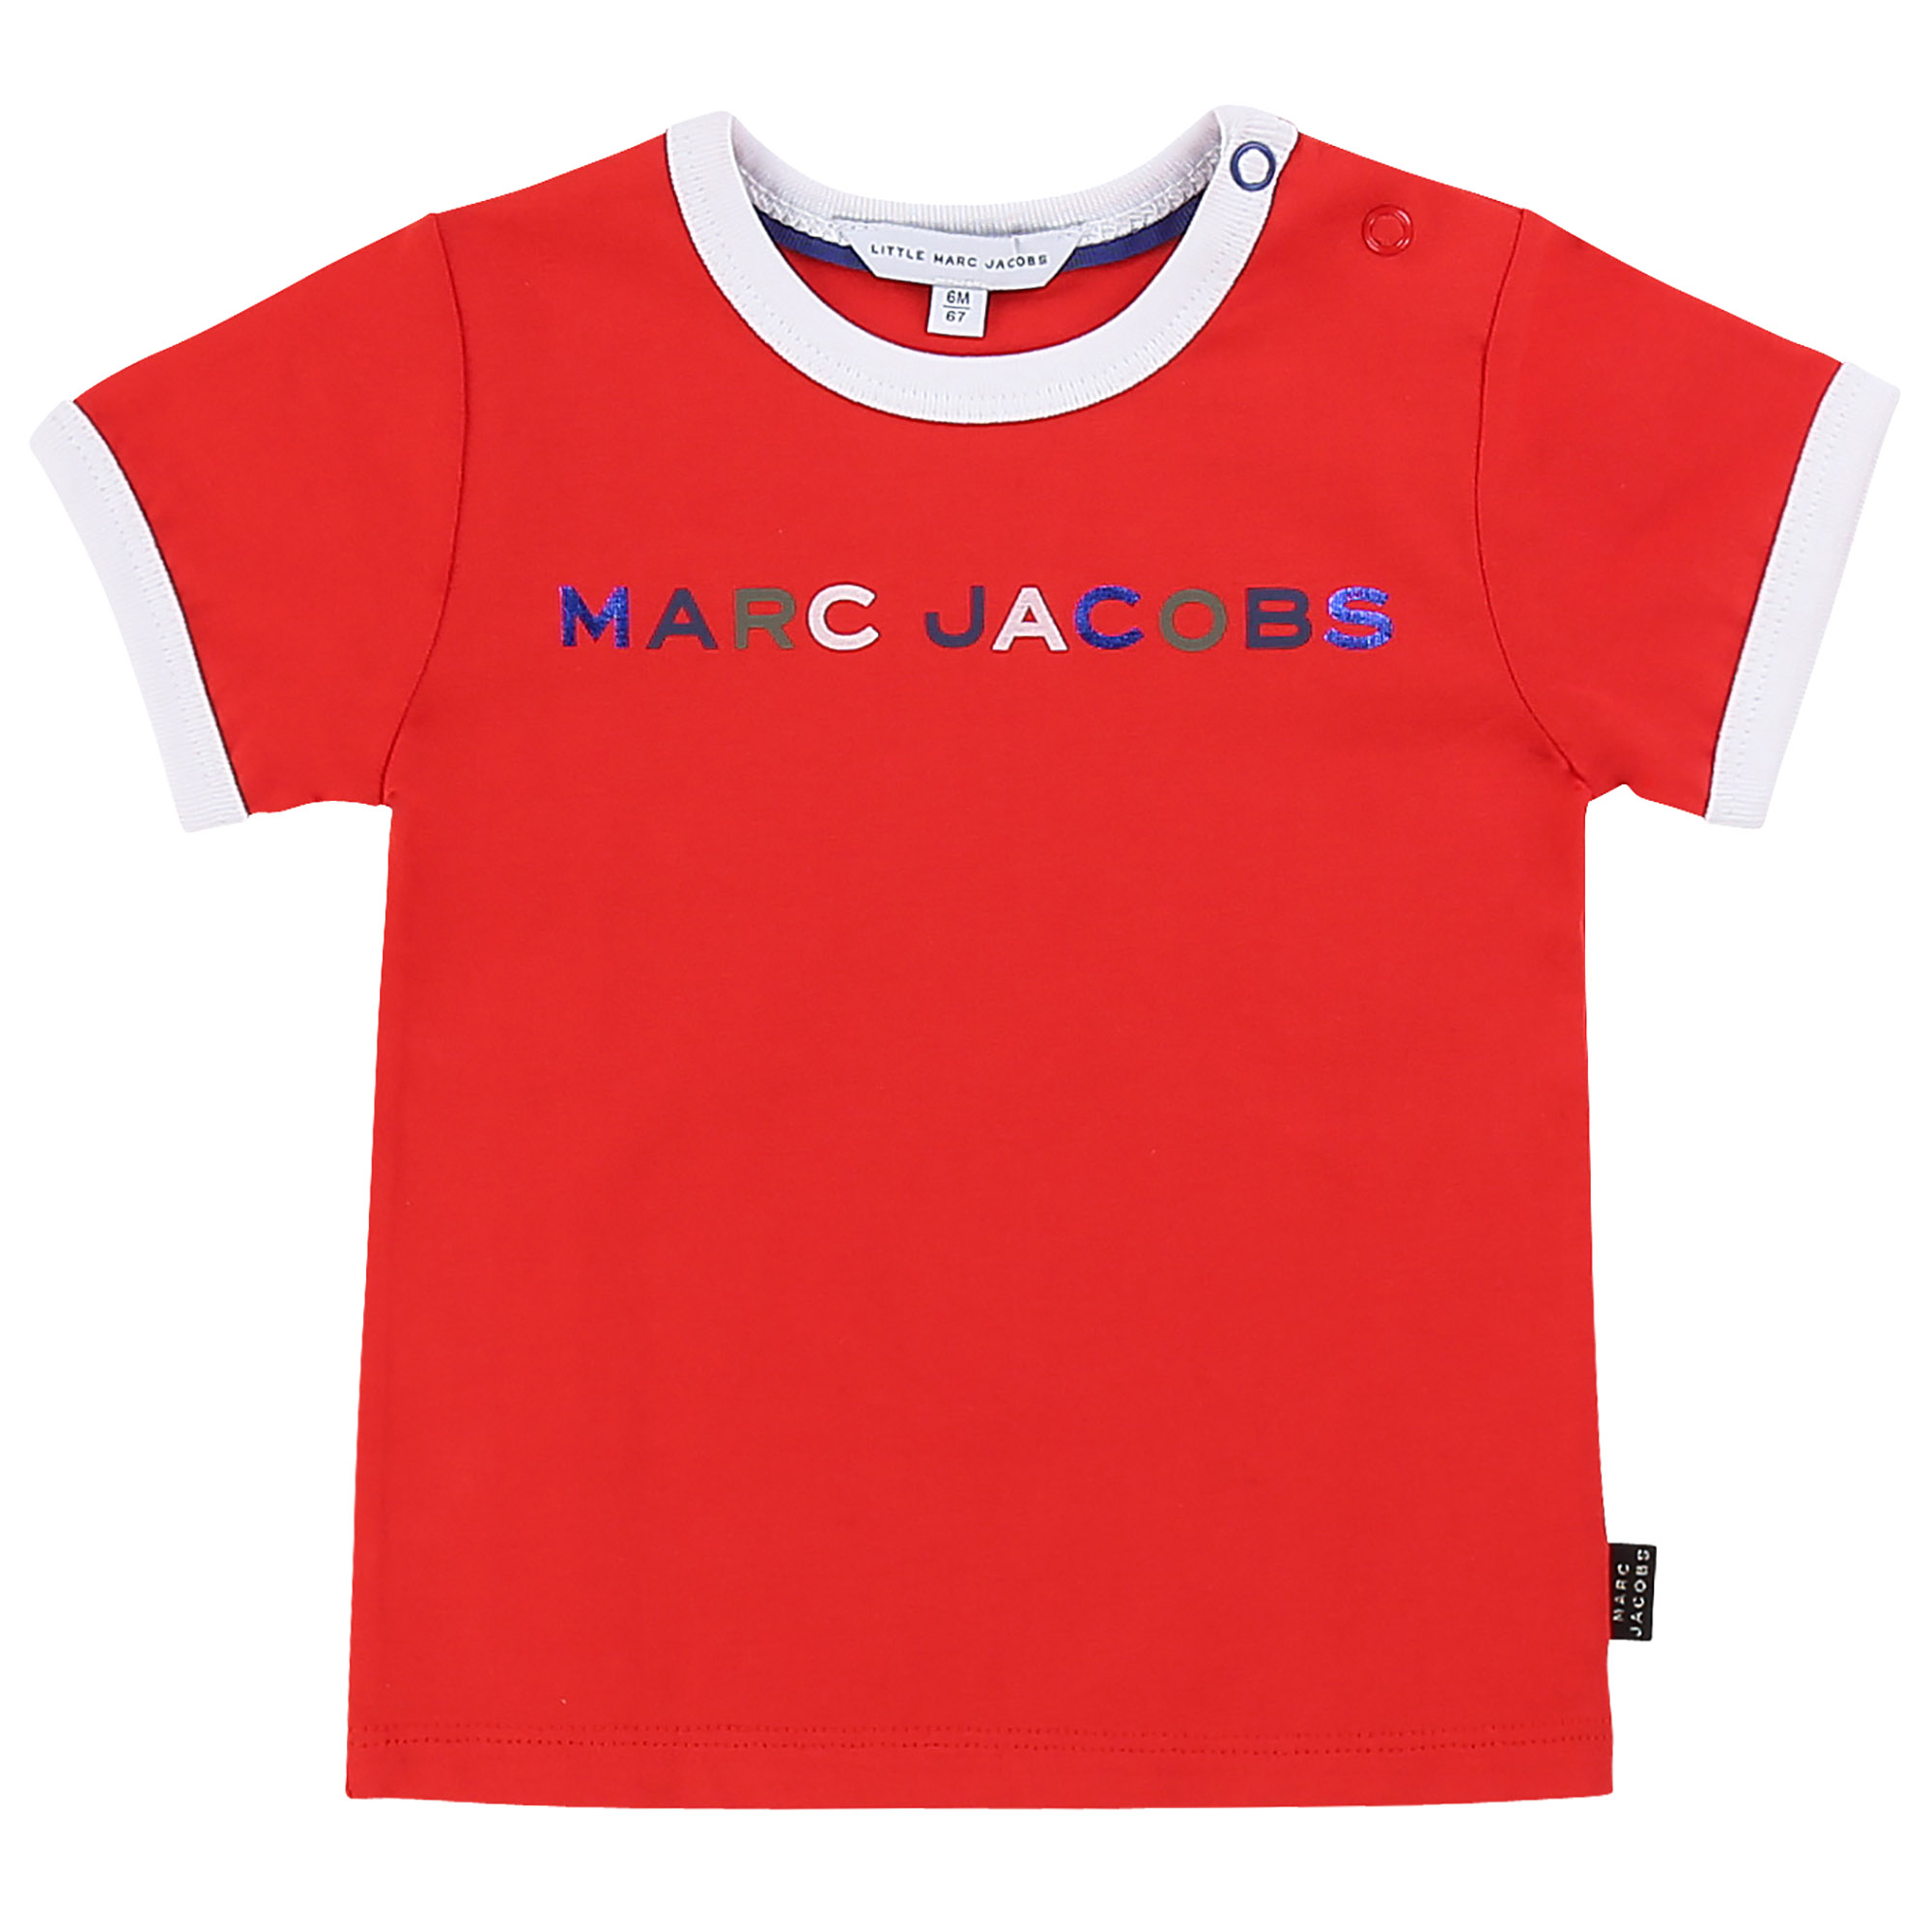 T-shirt multicolor in cotone THE MARC JACOBS Per RAGAZZO